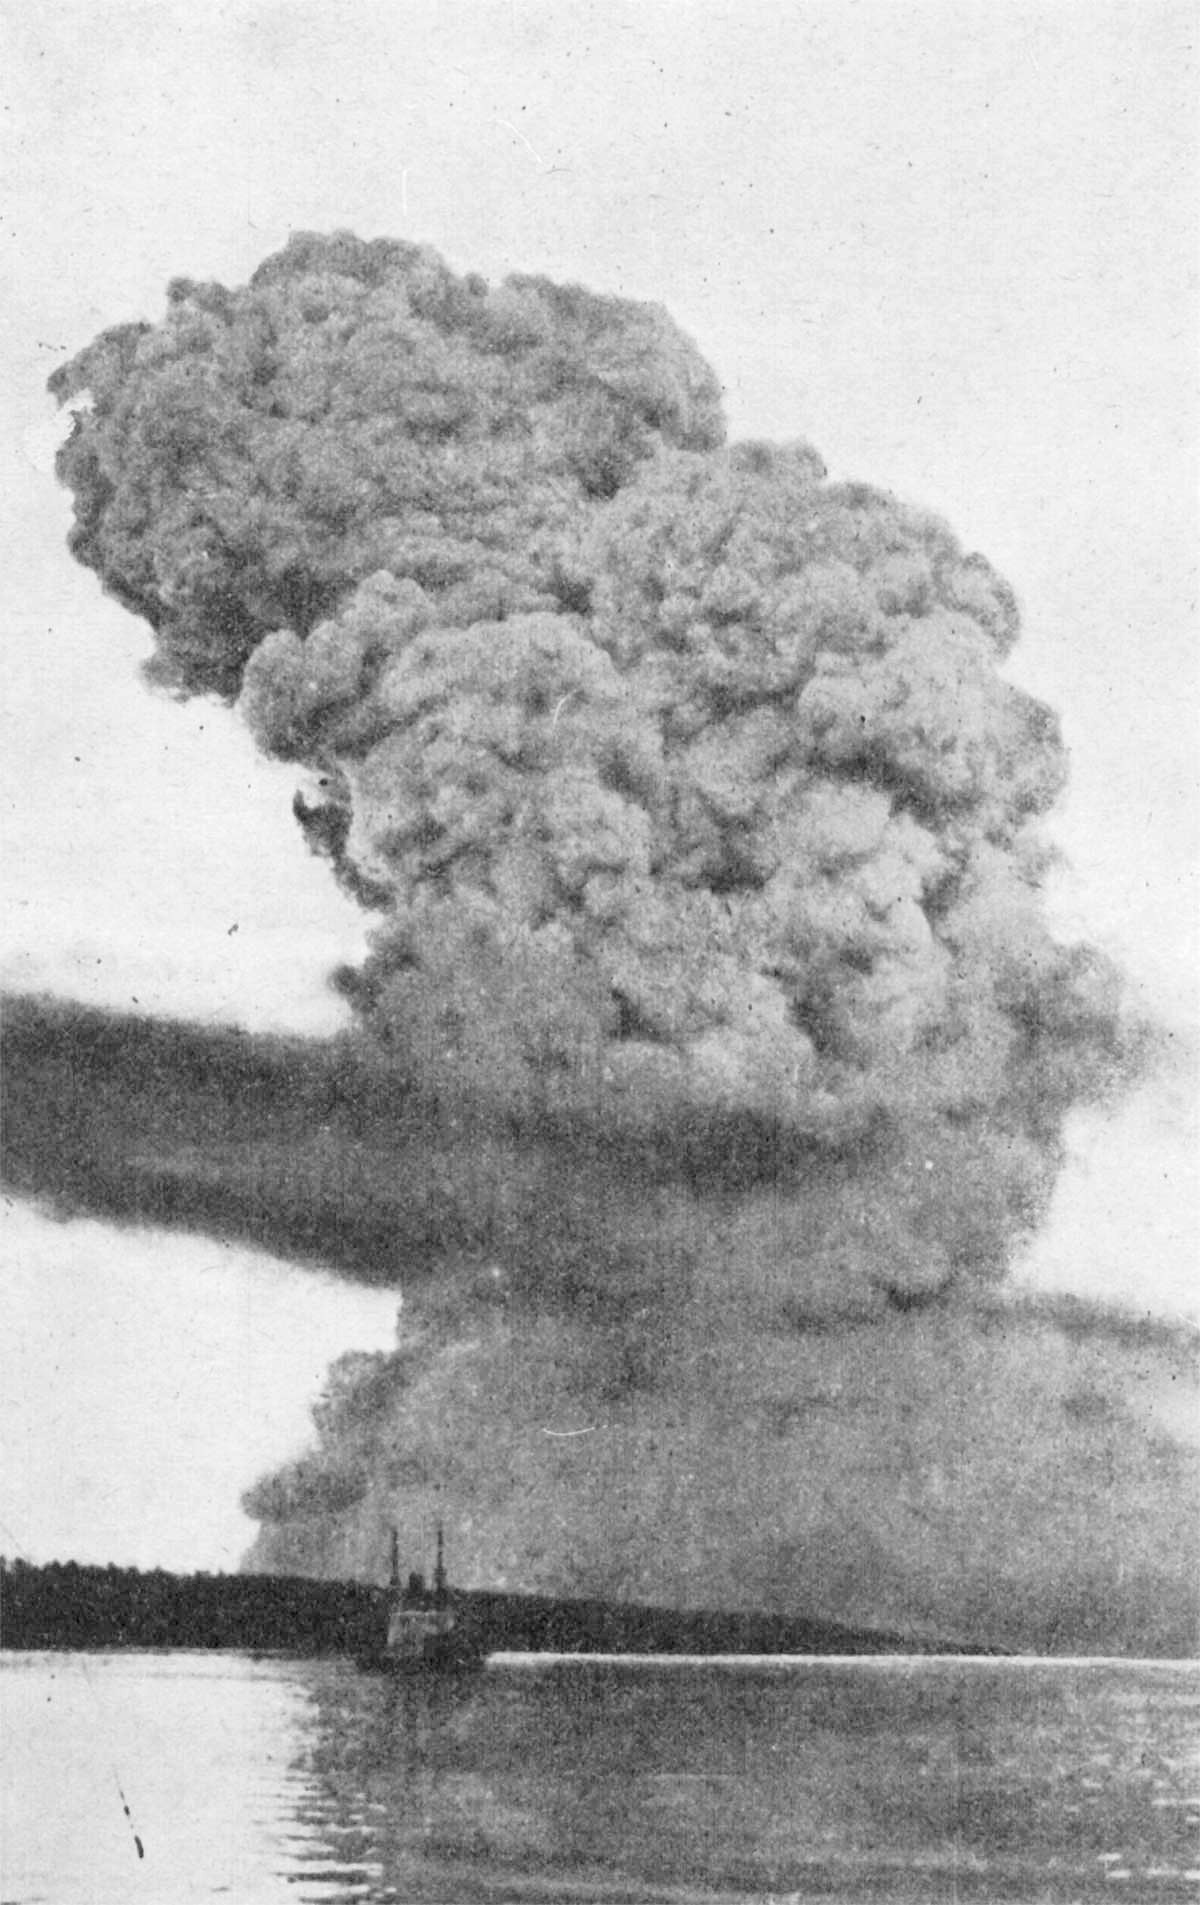 http://upload.wikimedia.org/wikipedia/commons/3/37/Halifax_Explosion_blast_cloud.jpg